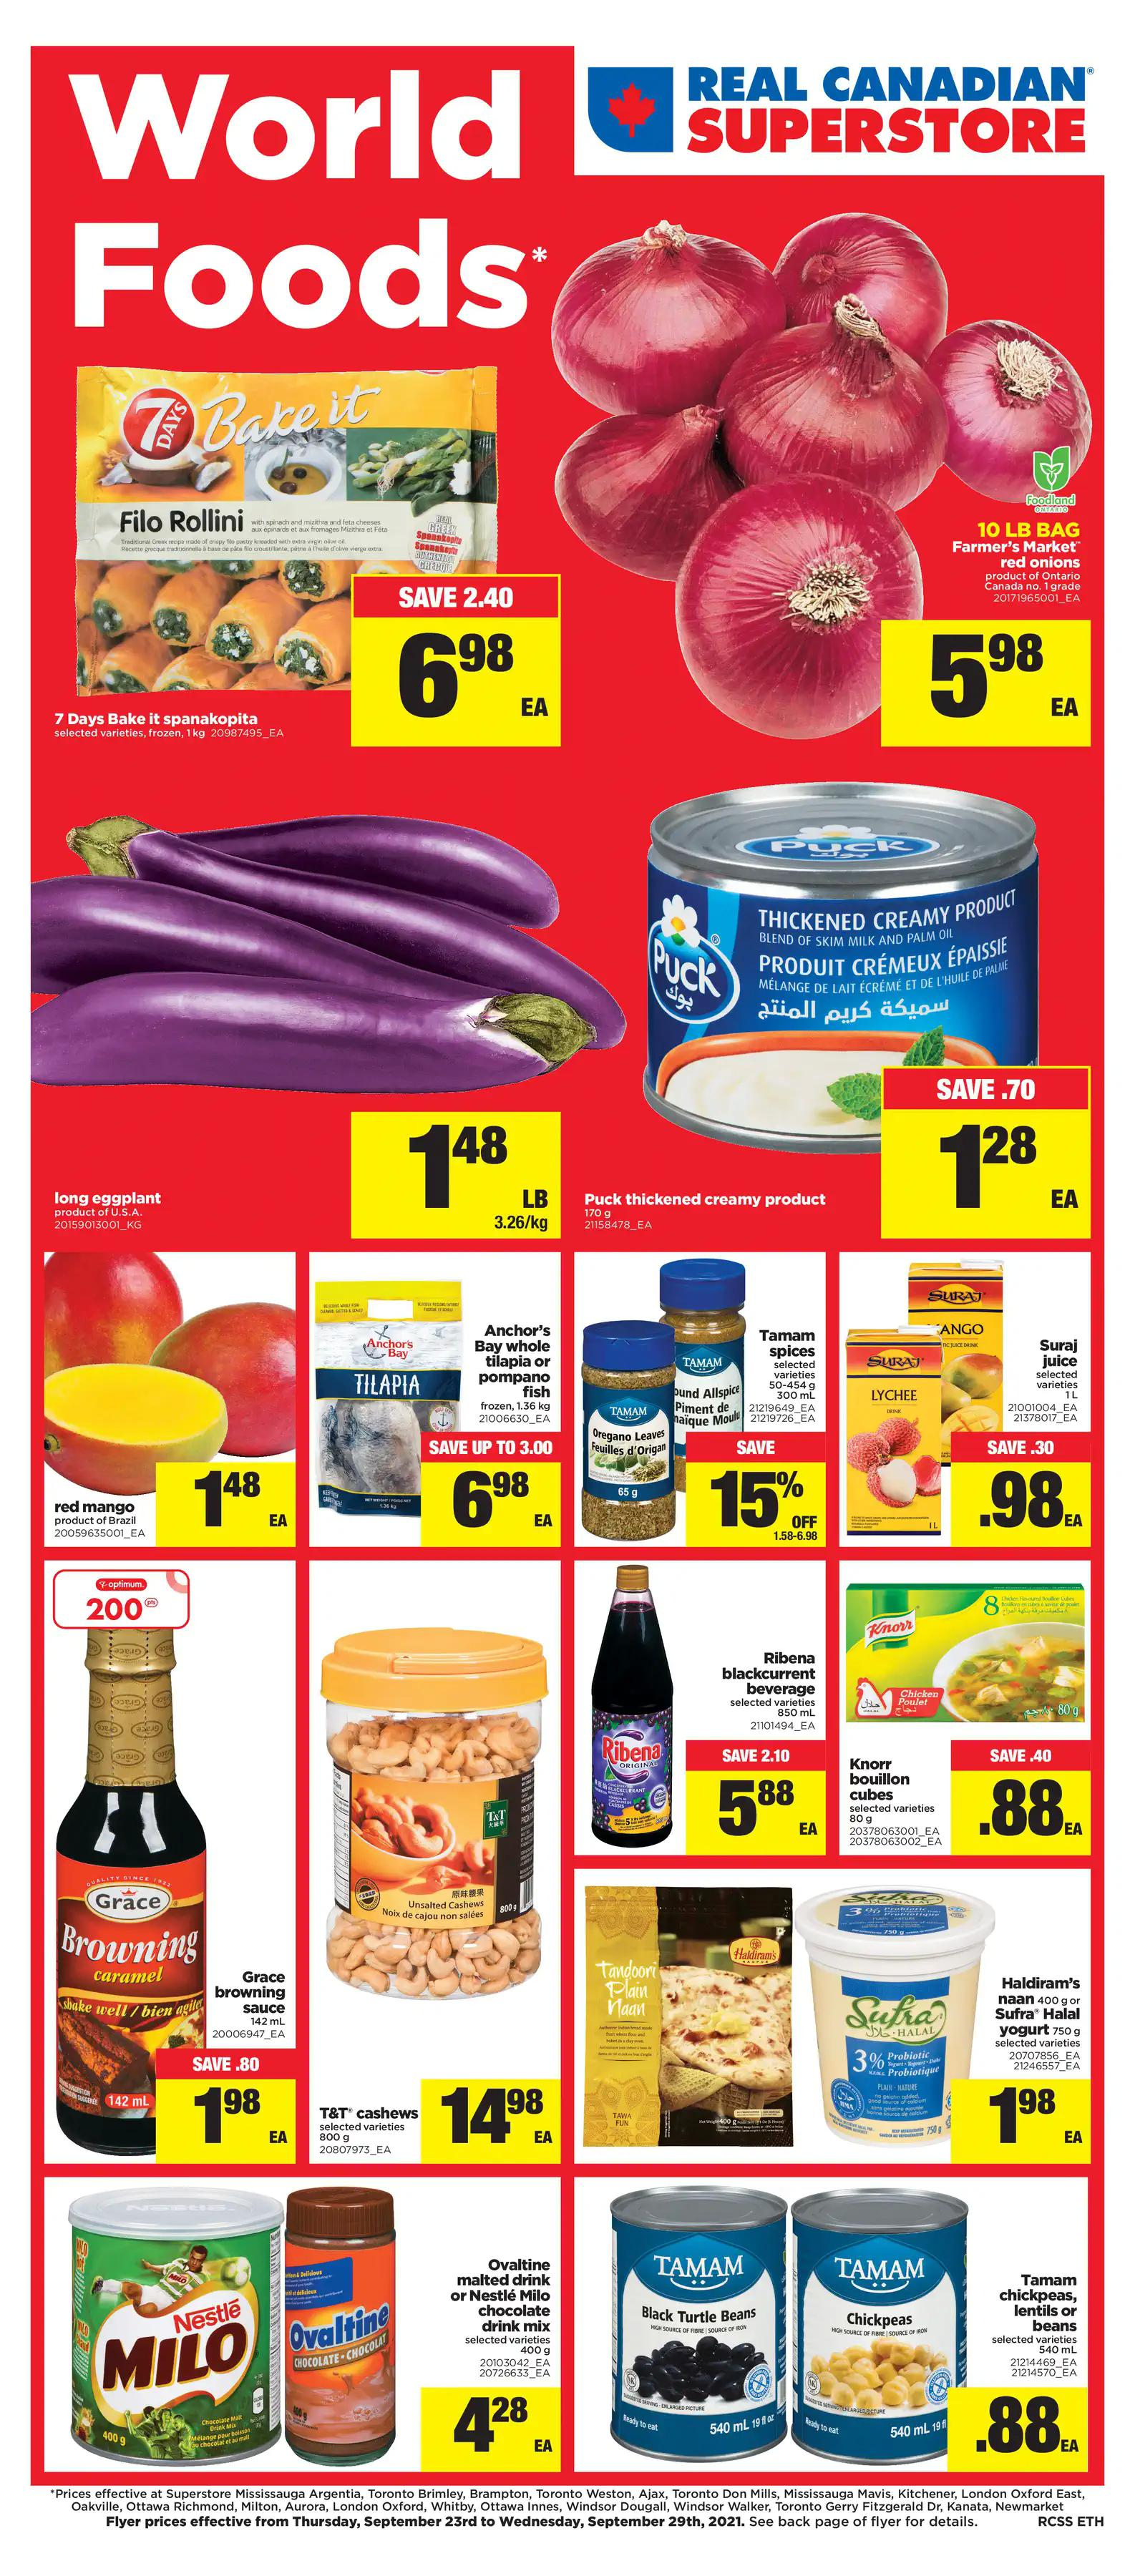 Real Canadian Superstore - Weekly Flyer Specials